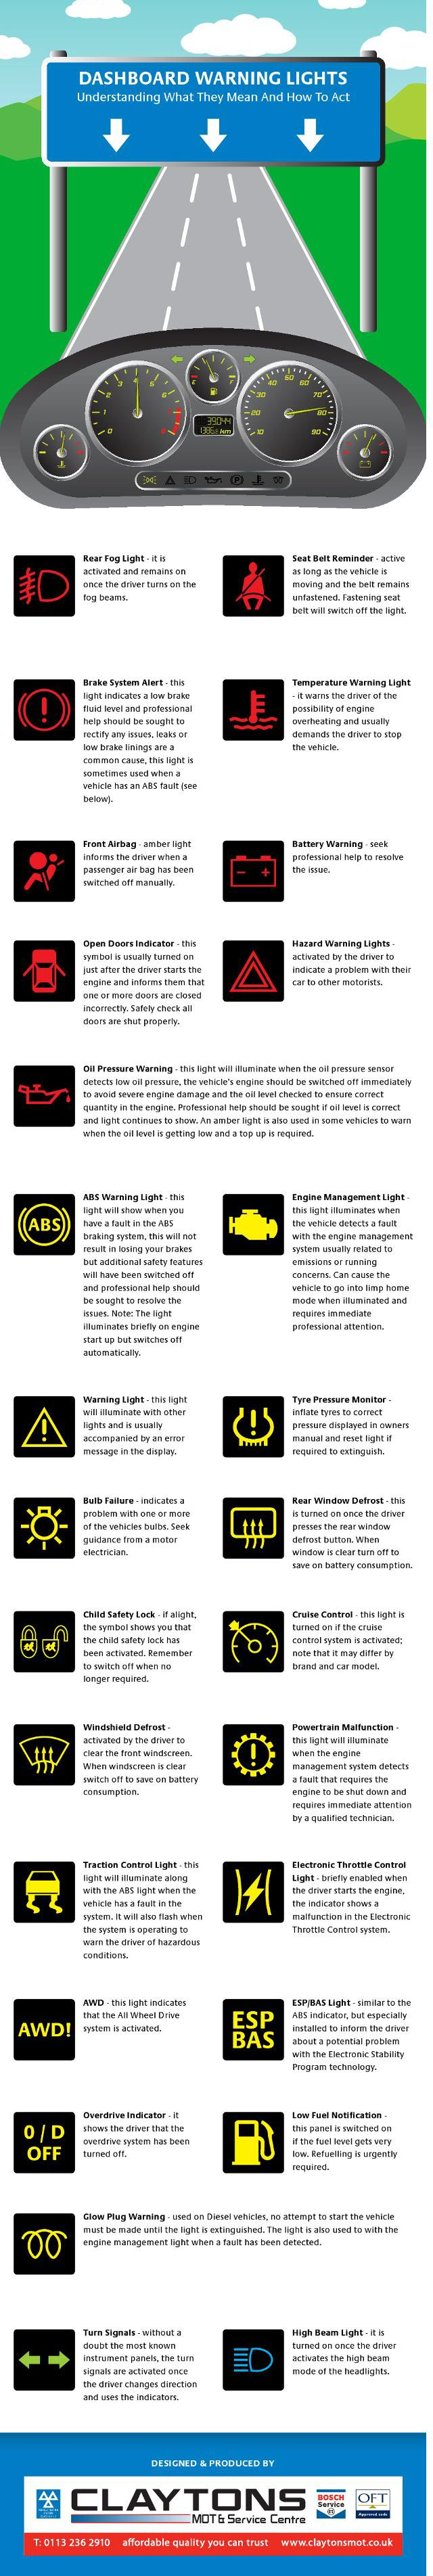 Dashboard warning lights, what they mean and how they act